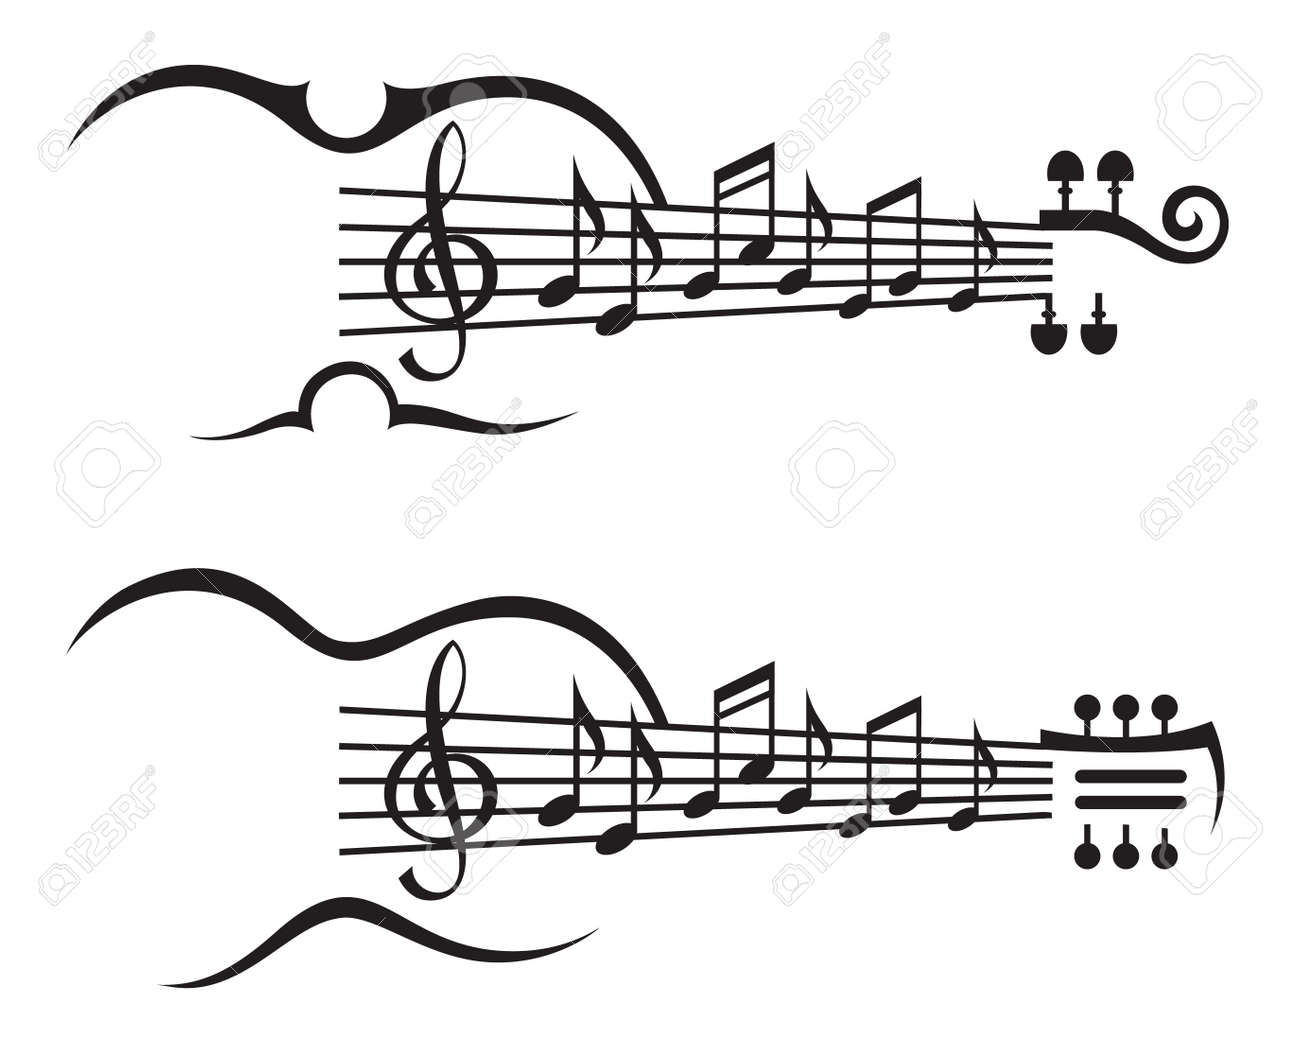 monochrome illustration of music notes on stave - 48709245